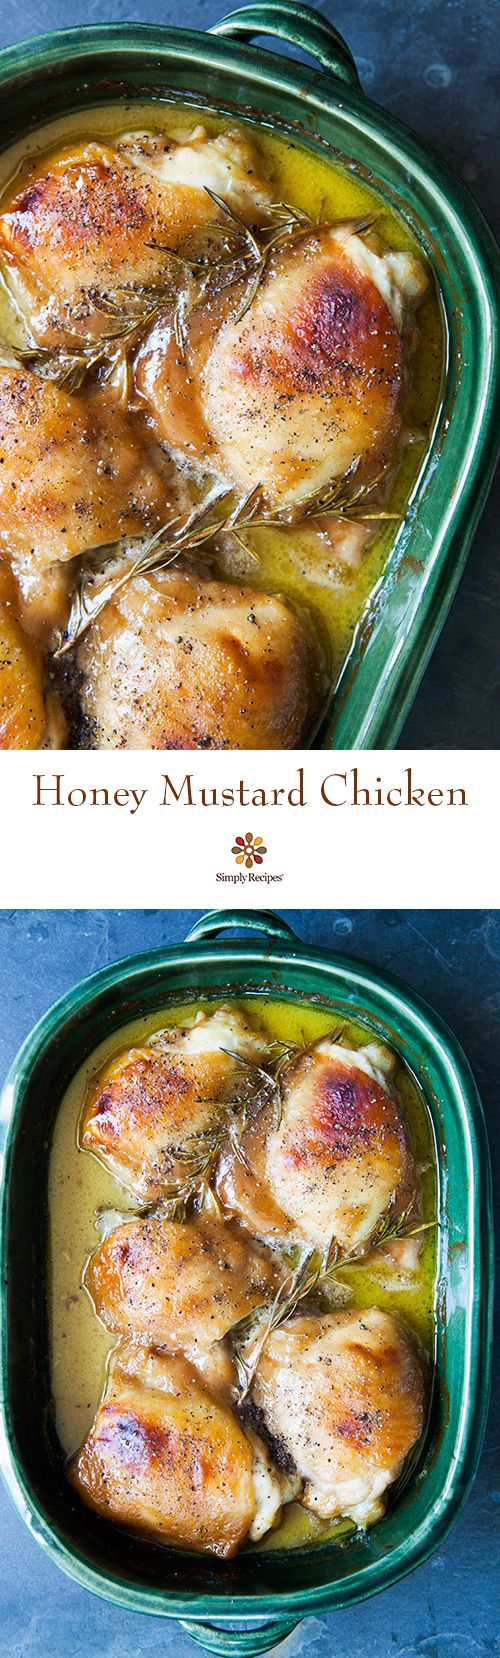 Couldn't be easier, and so good! Honey, Dijon mustard, olive oil, chicken thighs, bake. On SimplyRecipes.com Perfect for an easy dinner, only one-pot, and it's gluten-free and paleo! #chicken #paleo #foodporn http://livedan330.com/2015/01/25/honey-mustard-chicken/